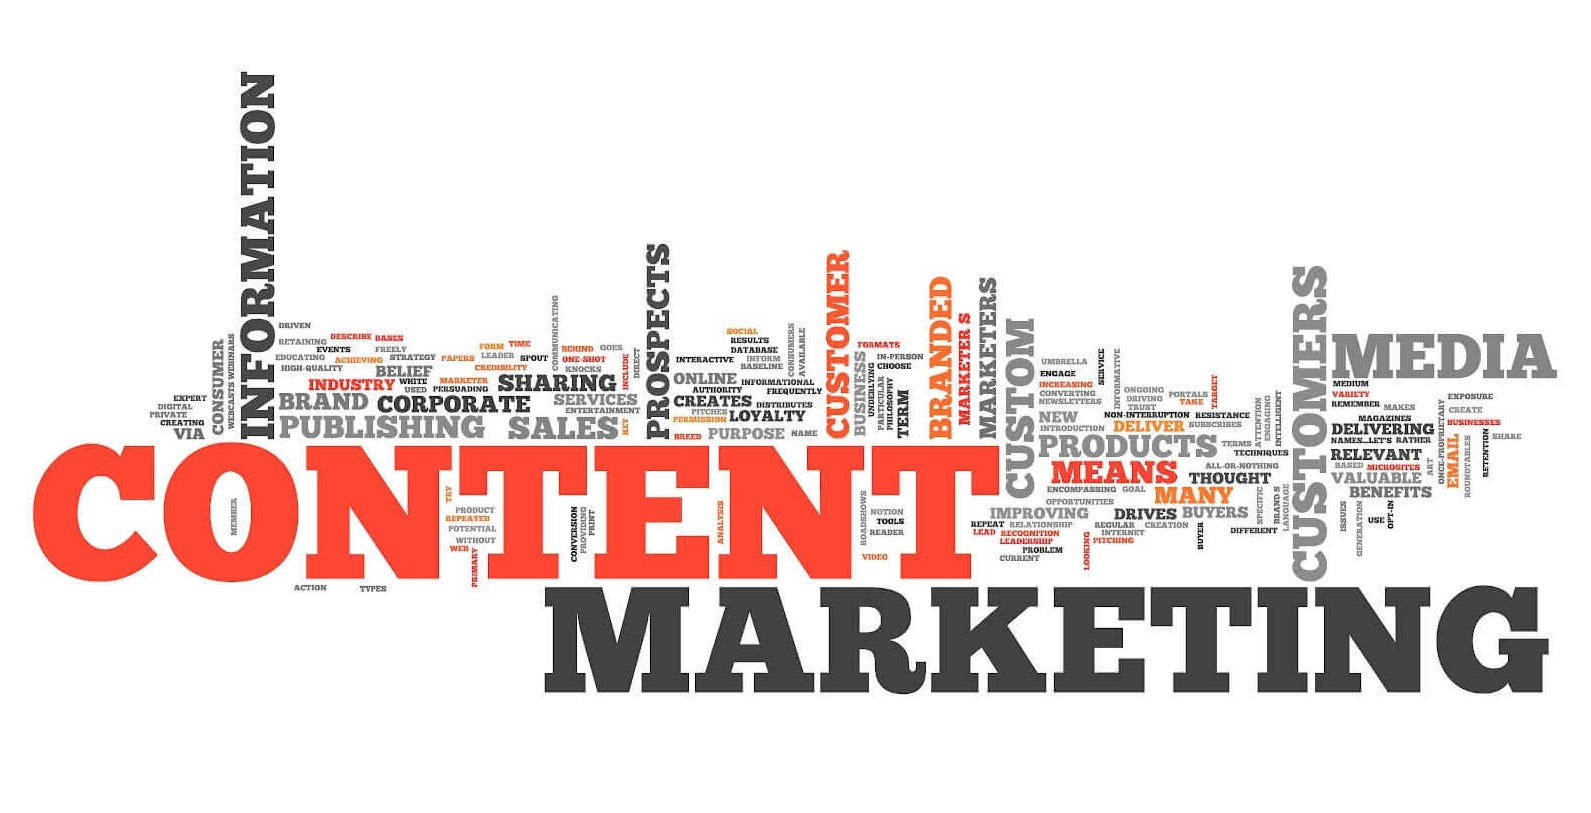 SEO in Melbourne Strategy Along With Content Marketing